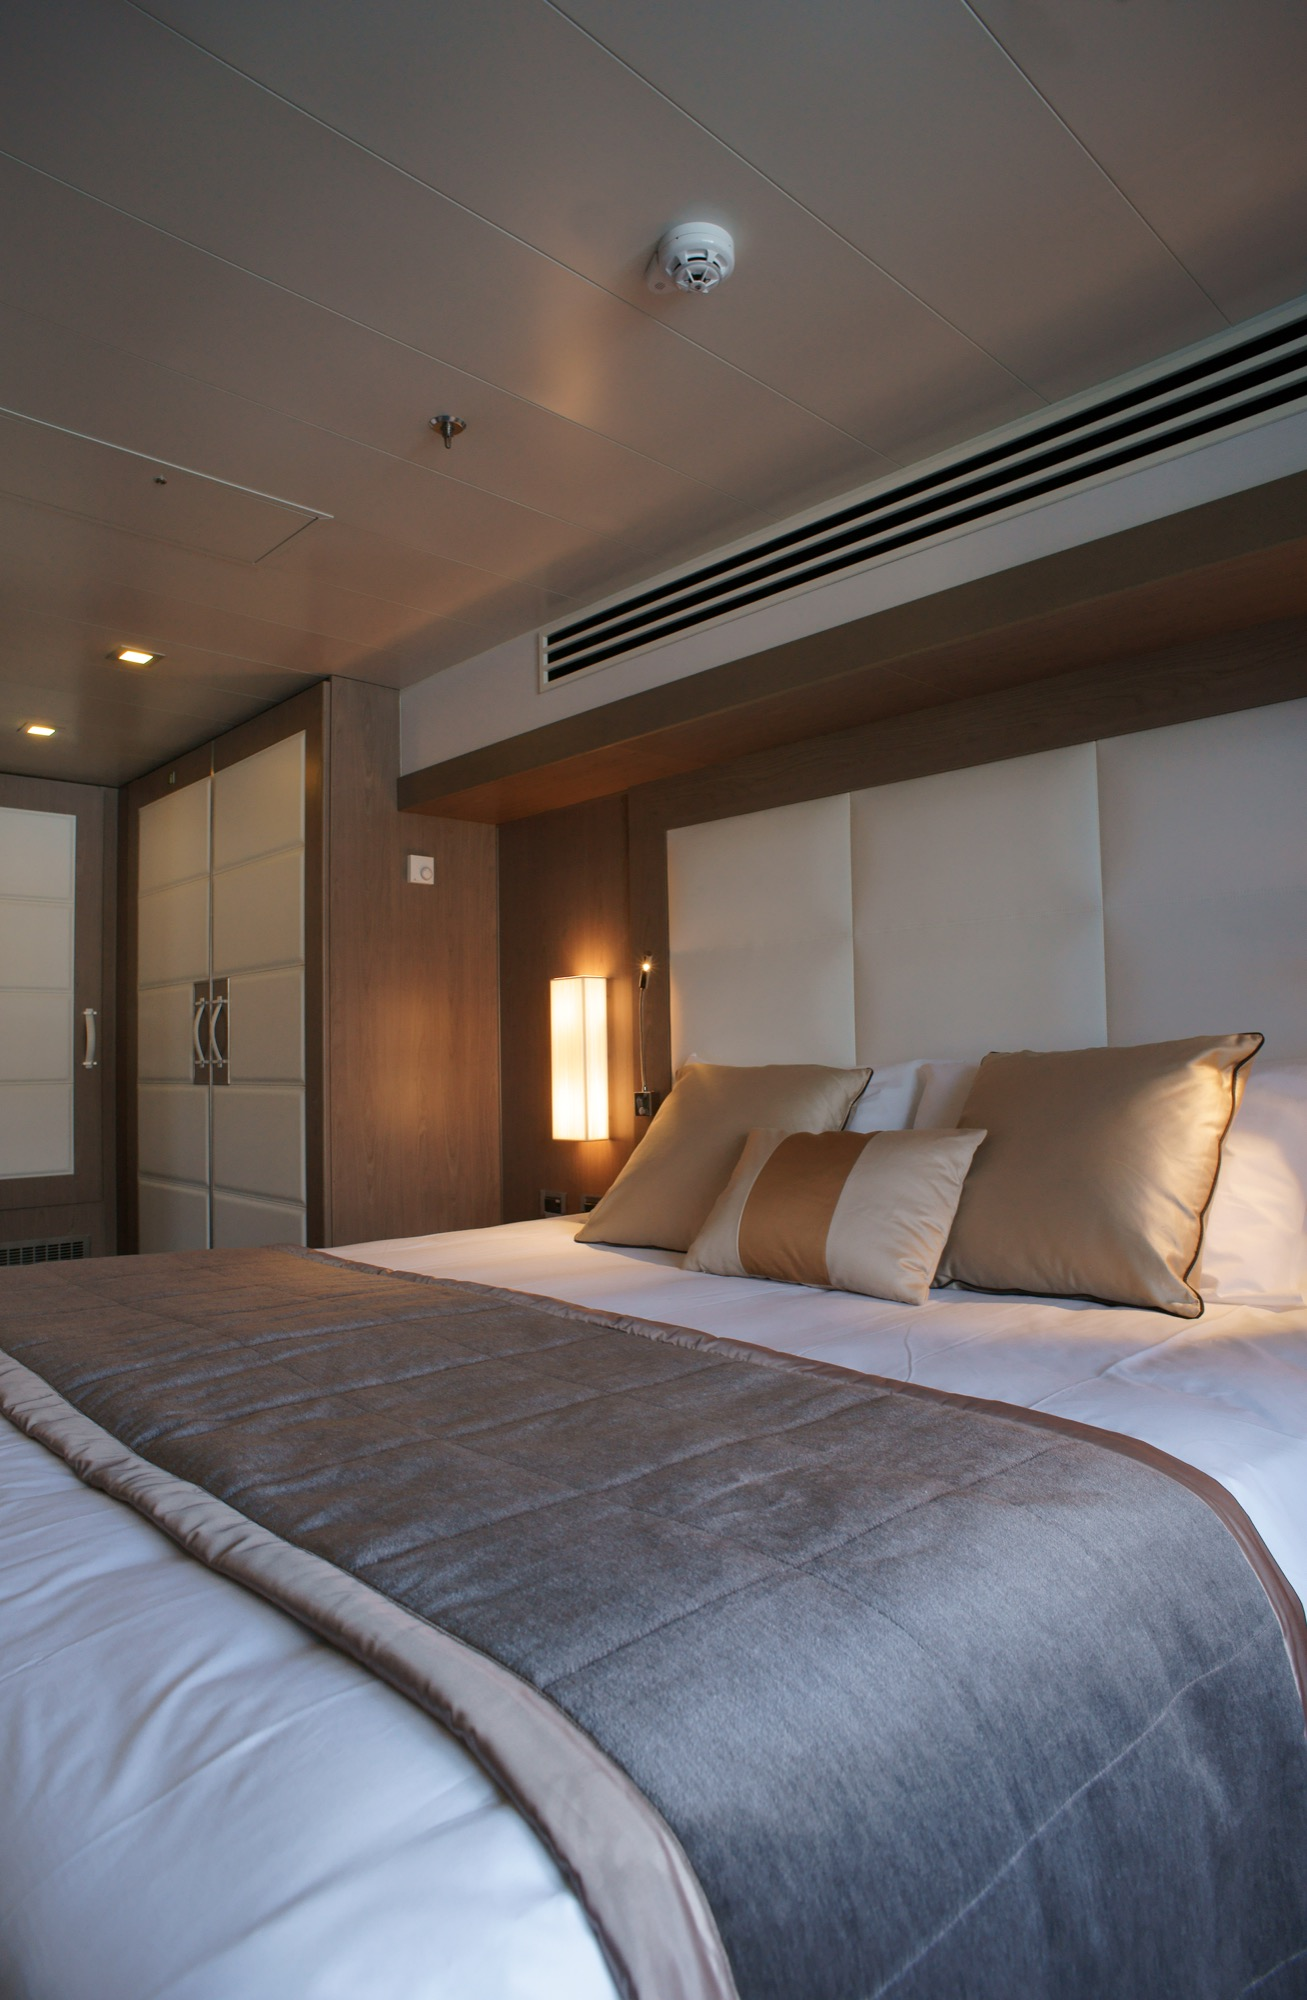 Ponant Le Boreal Accommodation Owner's Suite 3.JPEG